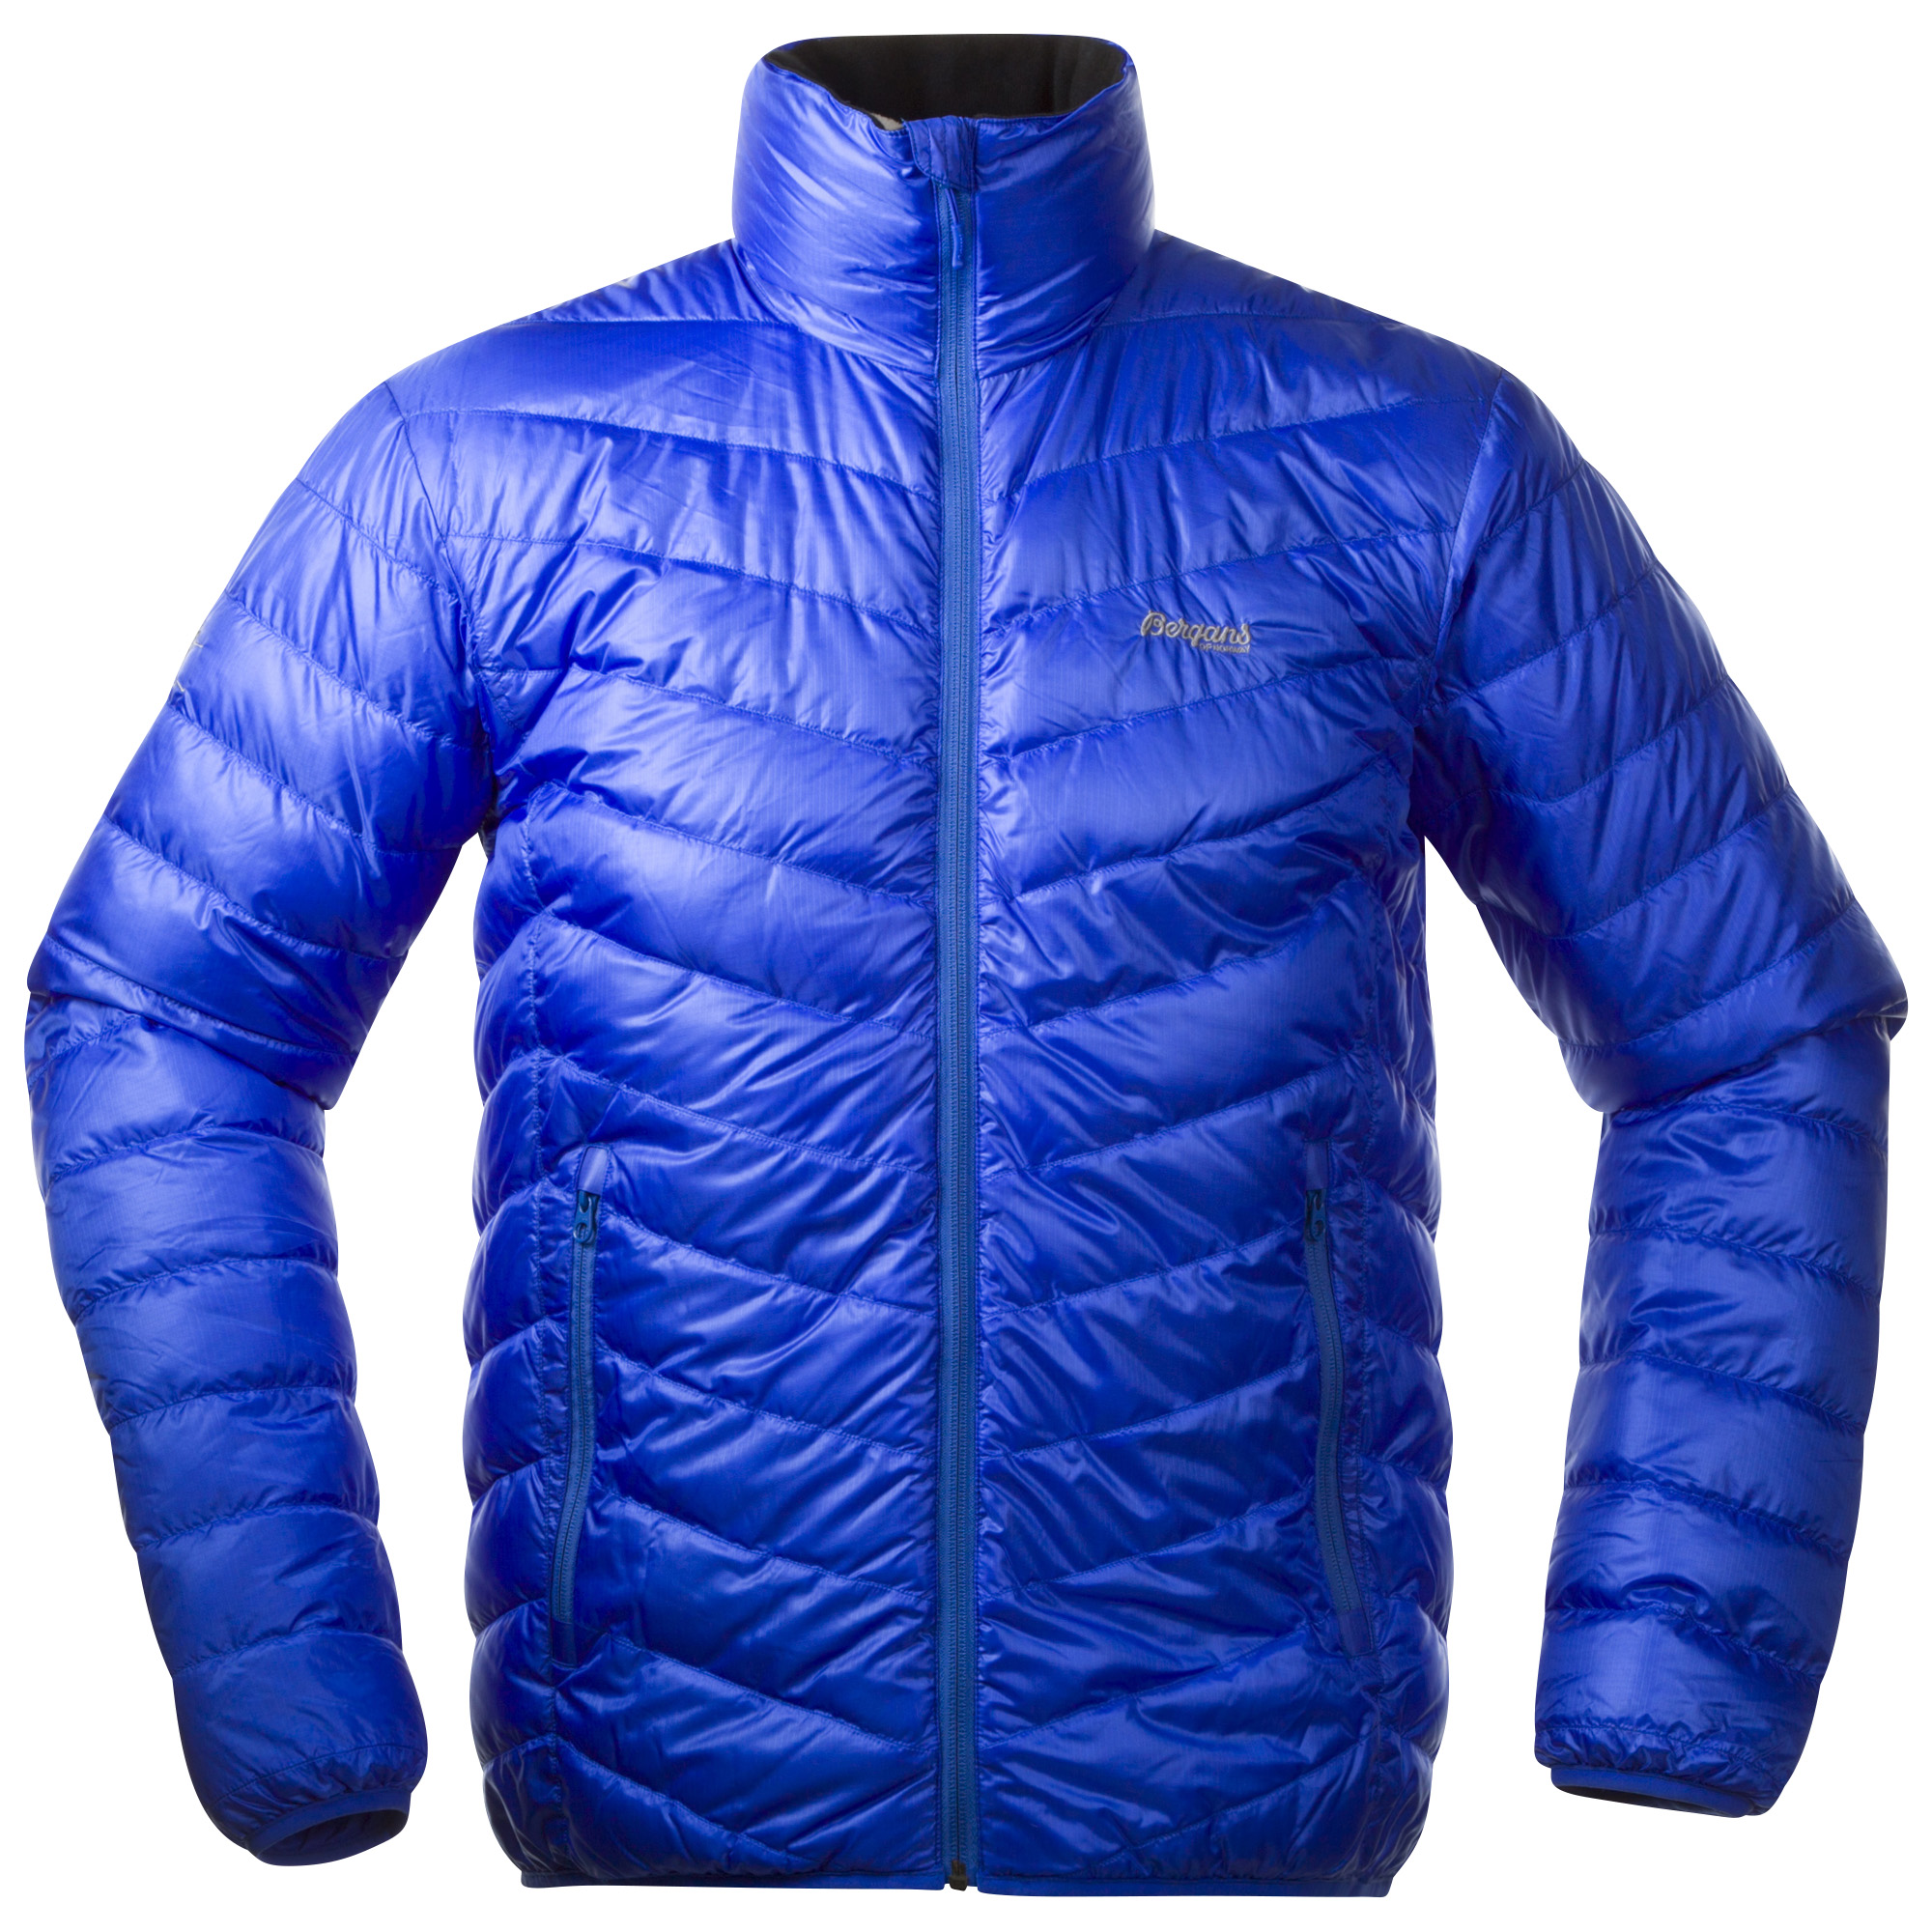 Geaca Puf Bergans Down Light - Albastru